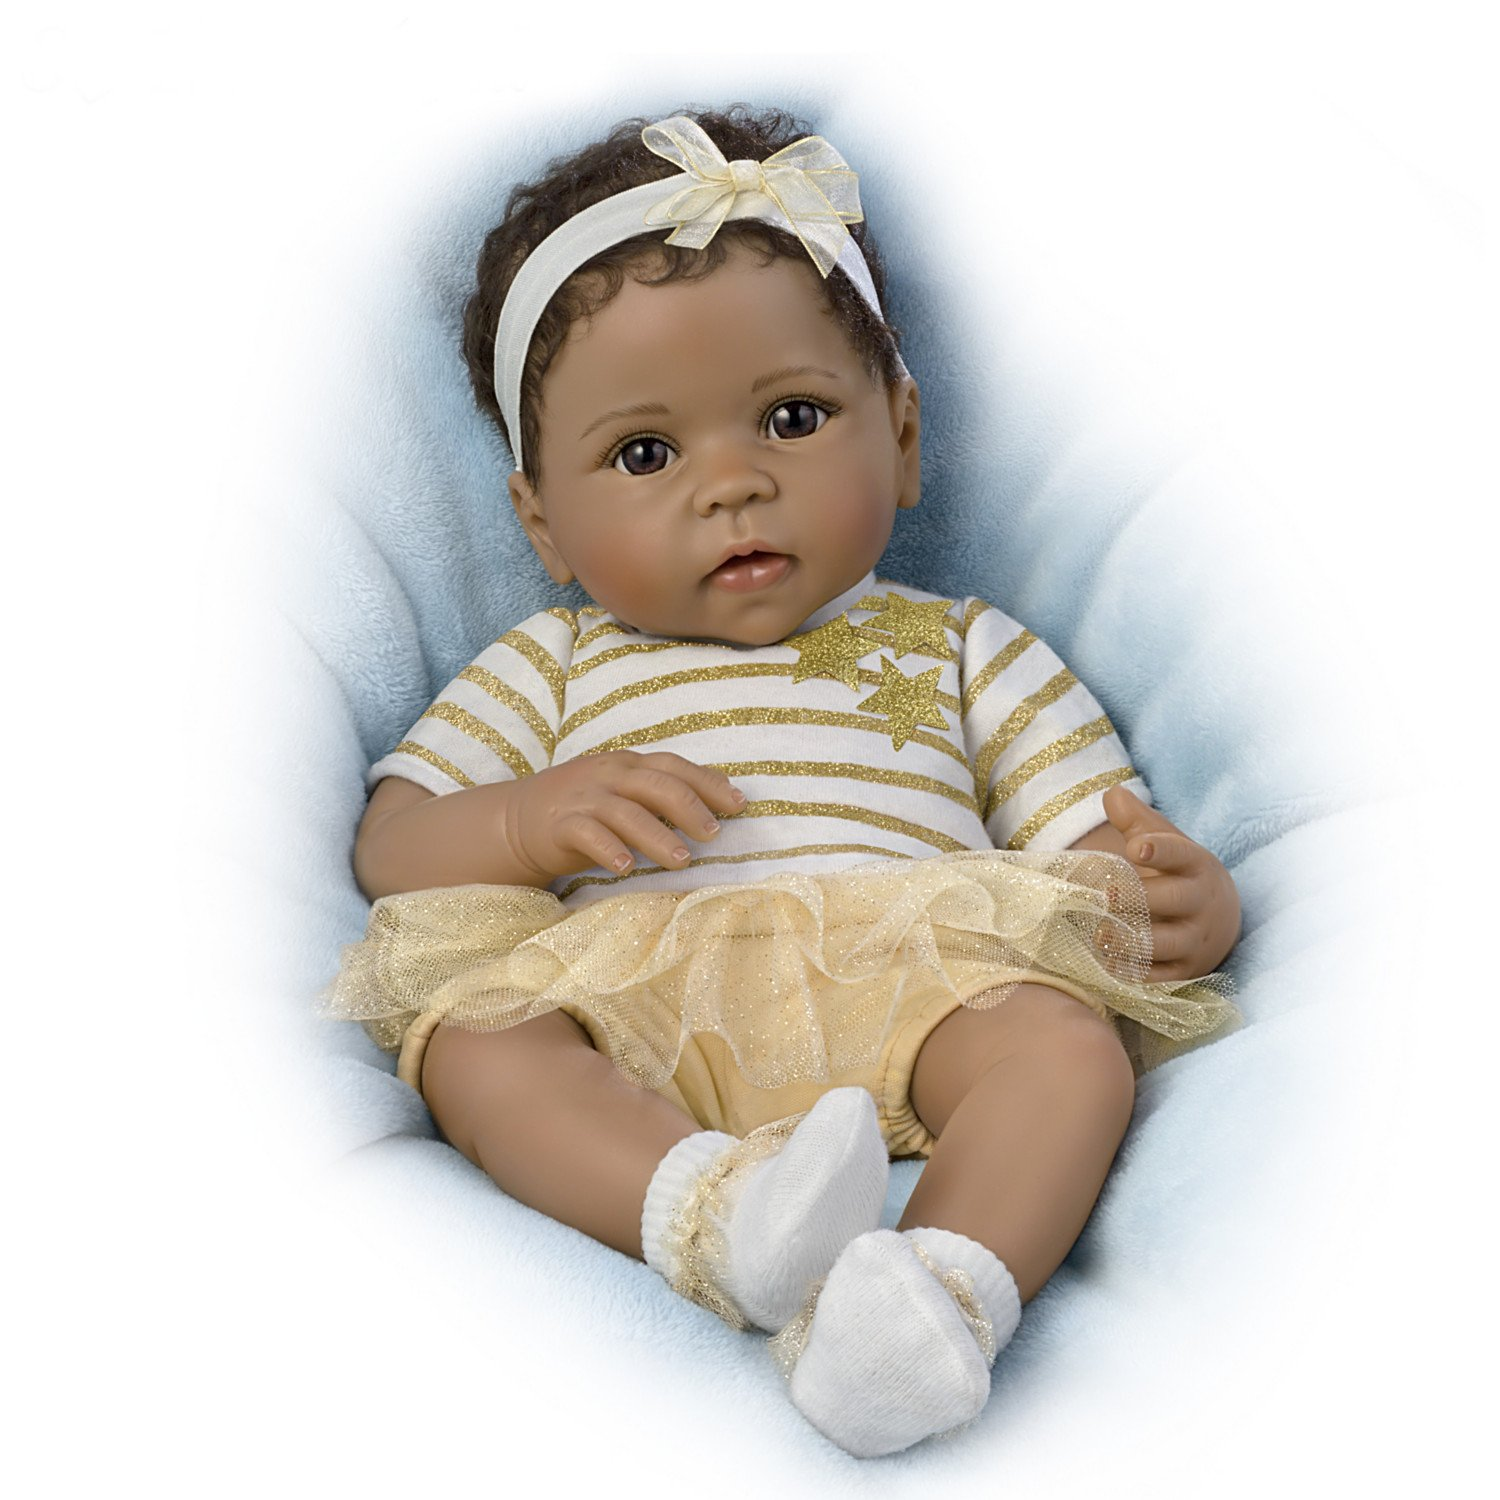 The Ashton-Drake Galleries Weighted Lifelike Baby Girl Doll by Artist Linda Murray: Star Themed Outfit